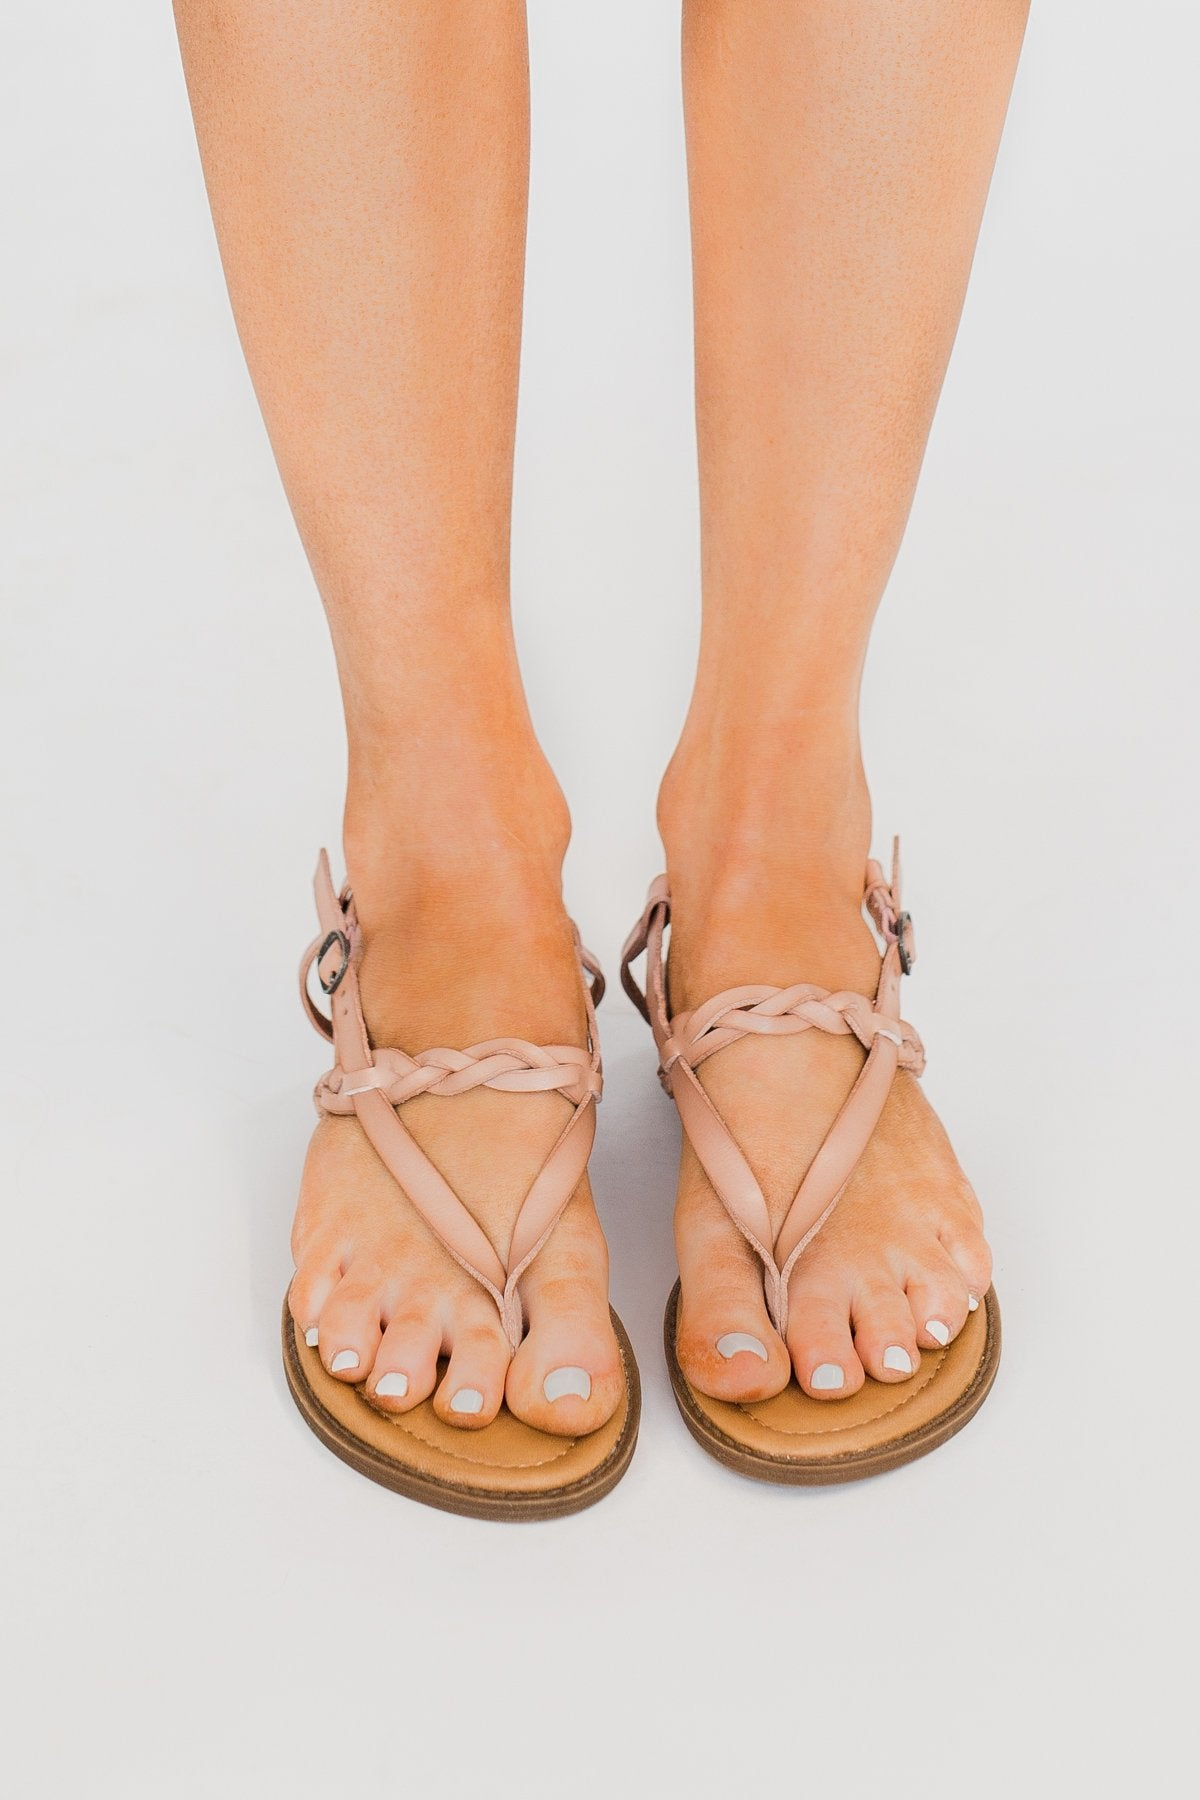 Blowfish Berg-B Sandals- Blush